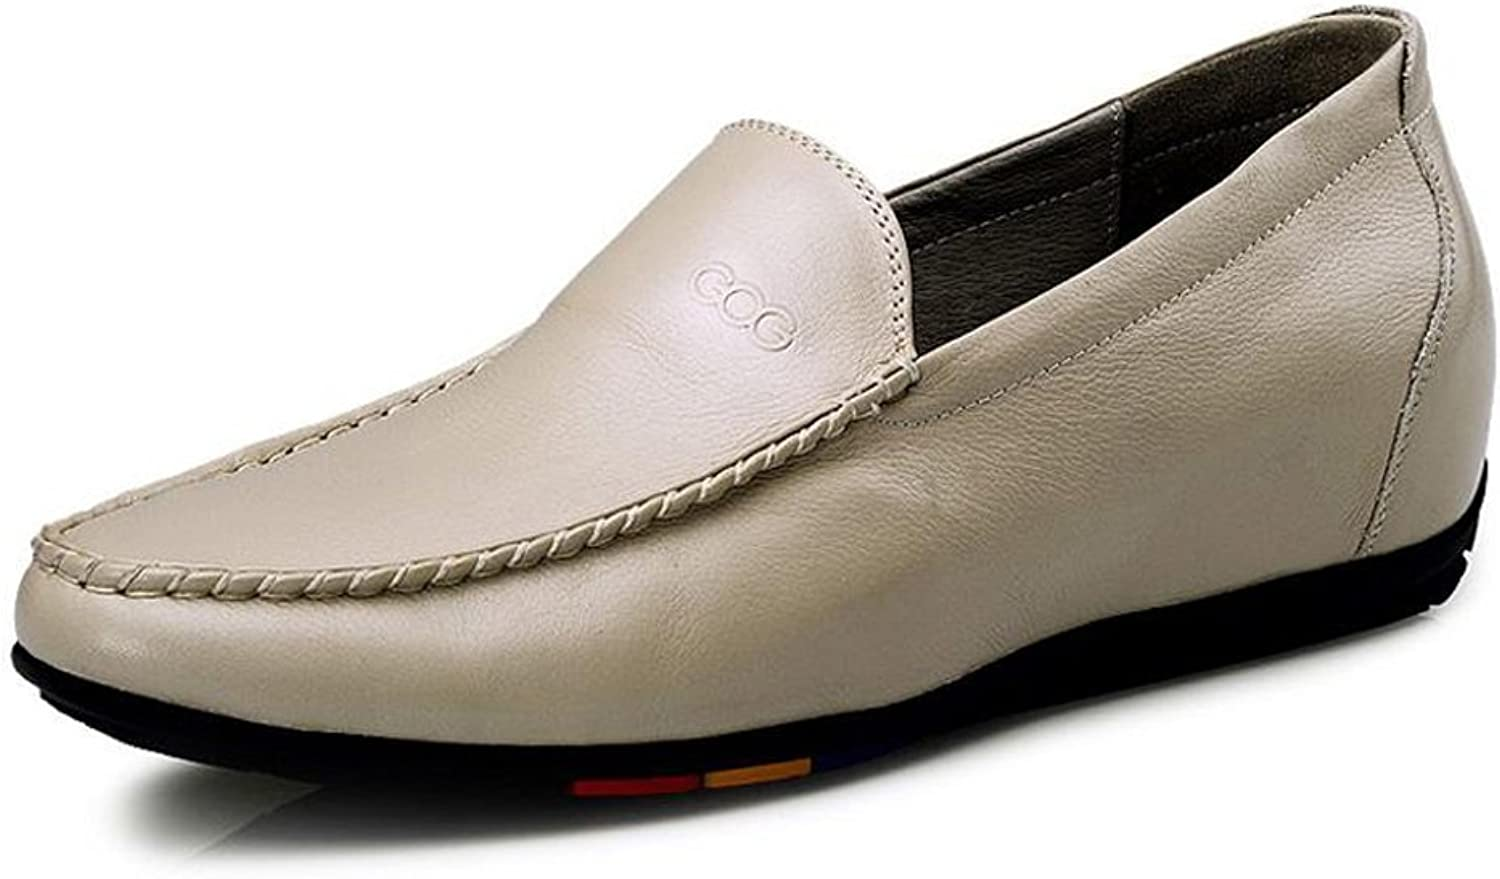 GG Men's White Soft Cow Leather 2.56 Inch Height Increasing Elevator Casual Driving shoes